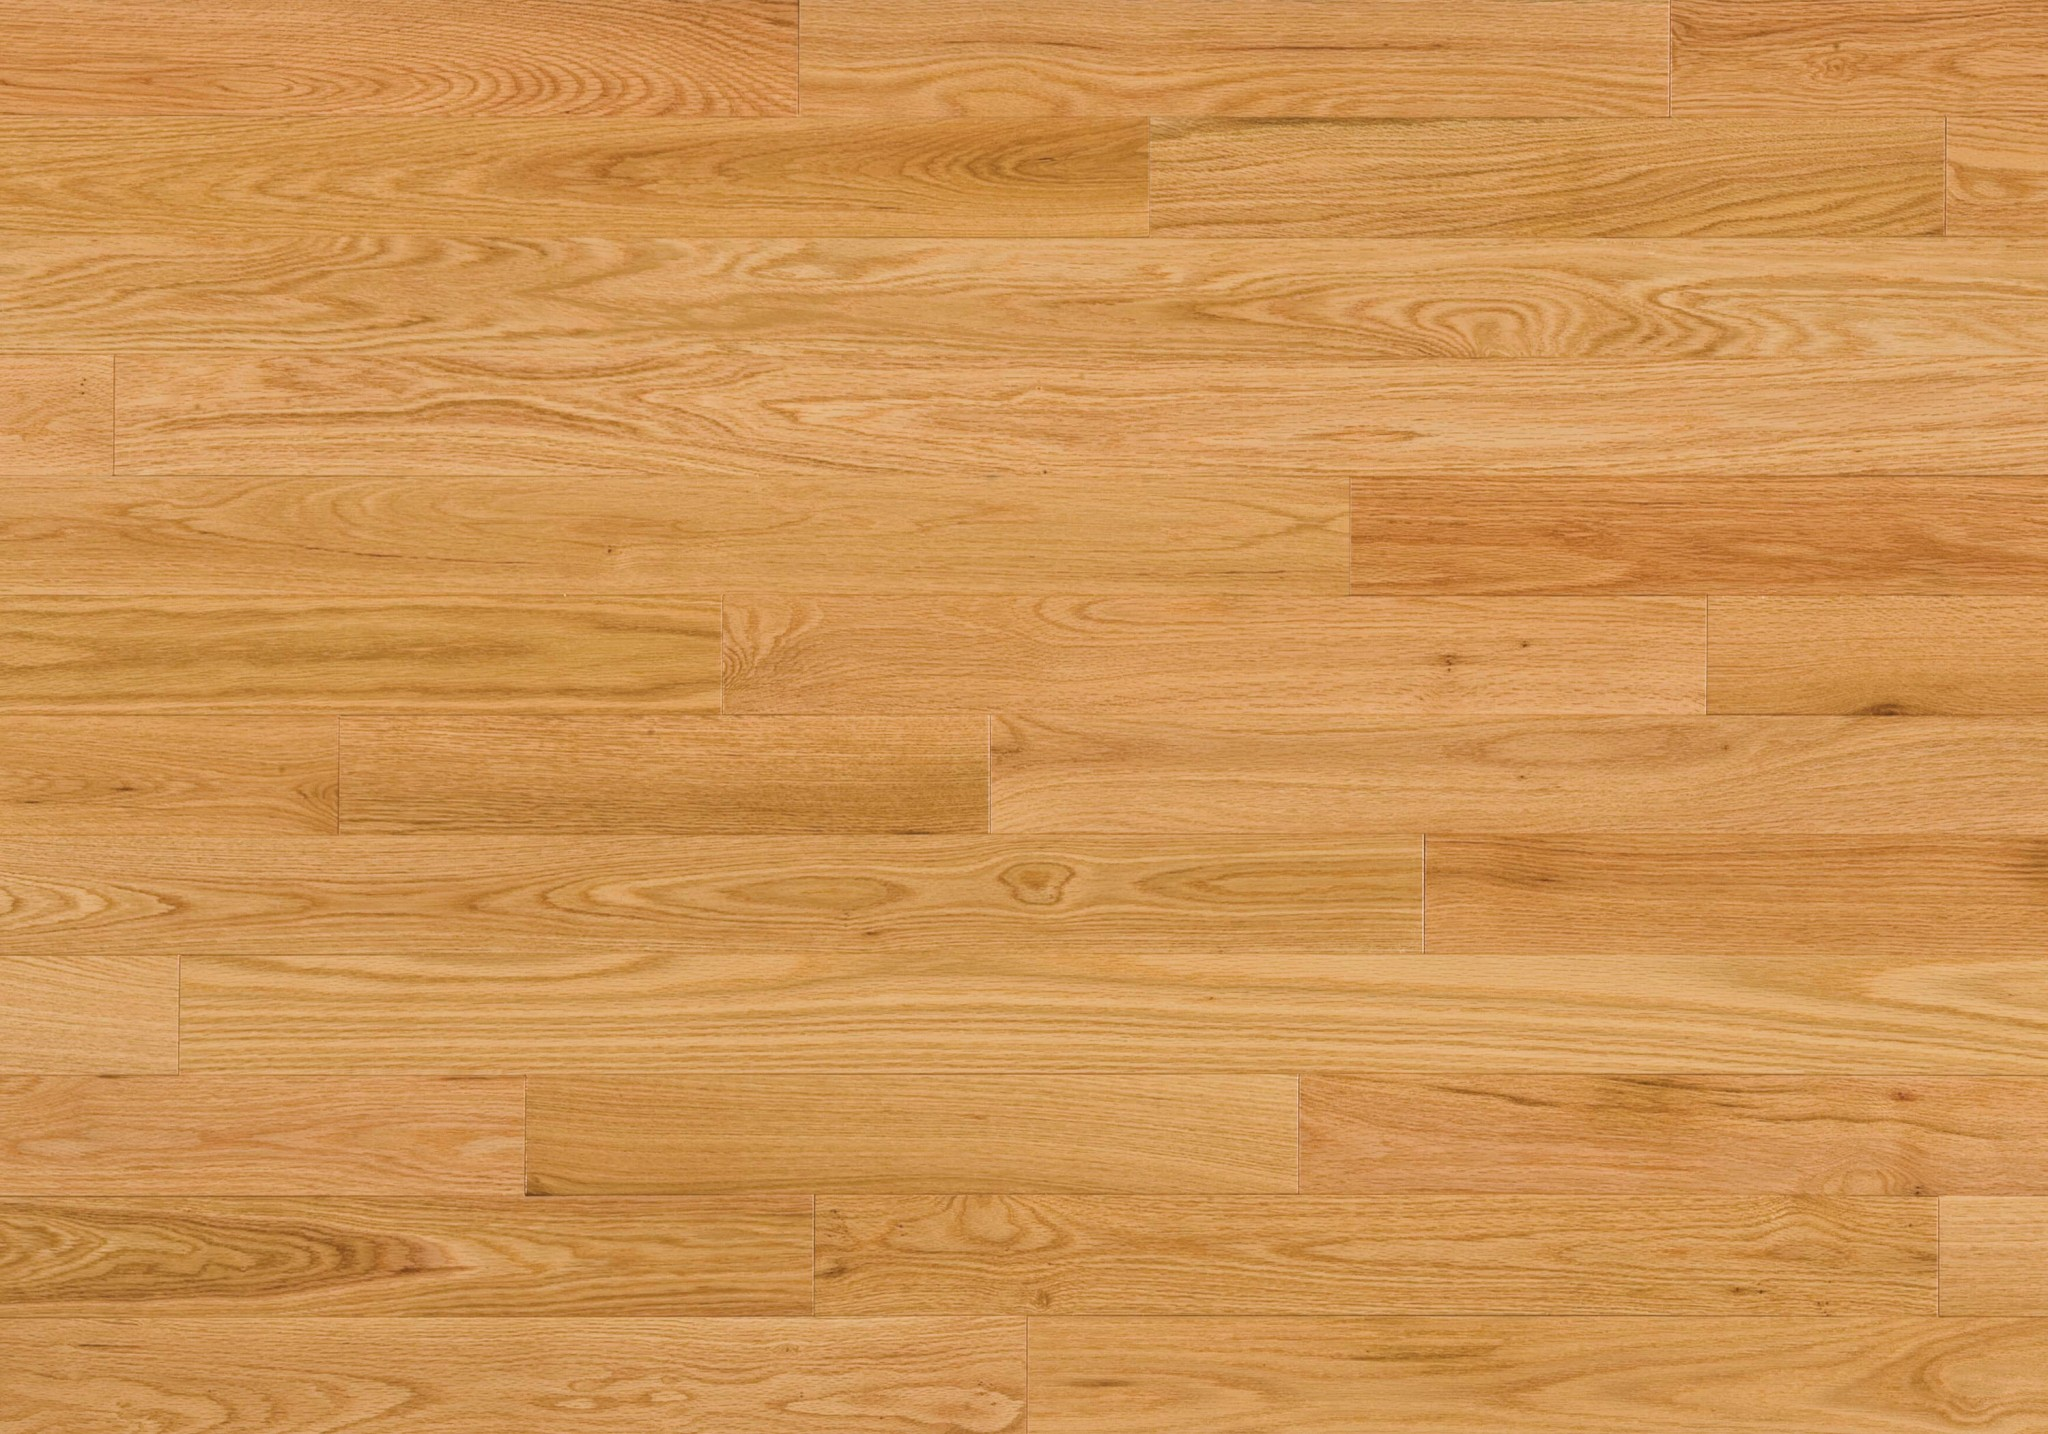 Natural white oak hardwood flooring wood floors for Wood flooring natural